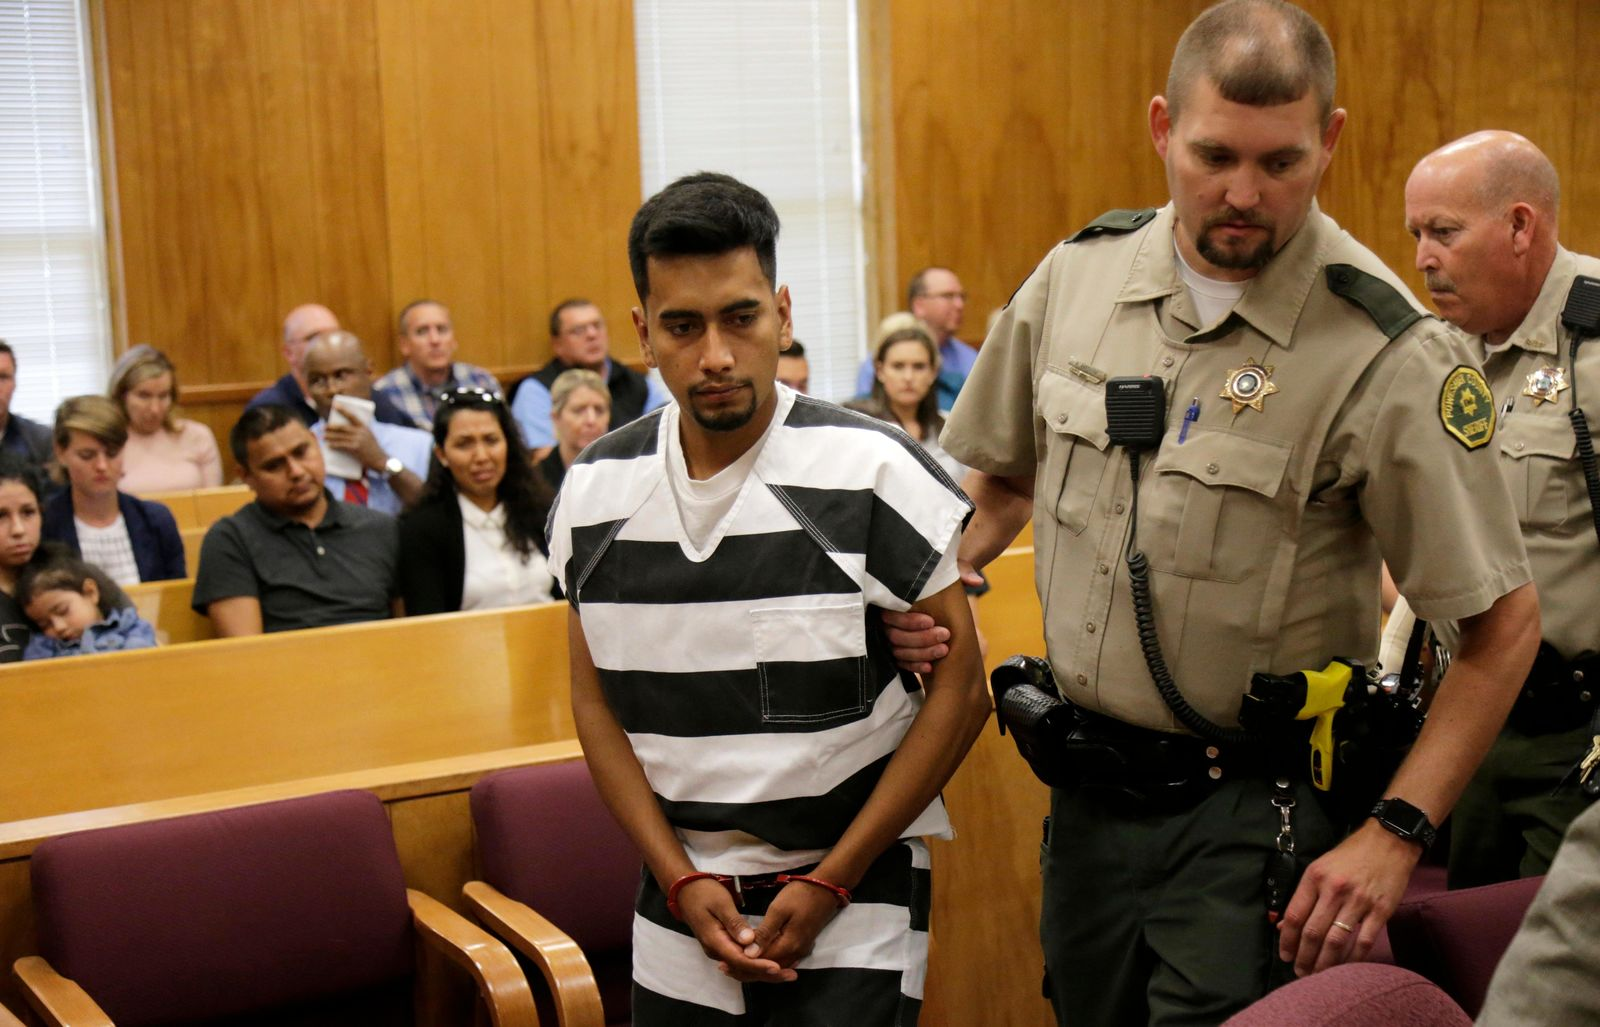 FILE - Cristhian Bahena Rivera is lead into the courtroom for his initial court appearance, Wednesday, Aug. 22, 2018, at the Poweshiek County Courthouse in Montezuma, Iowa. (Jim Slosiarek/The Gazette via AP, Pool)